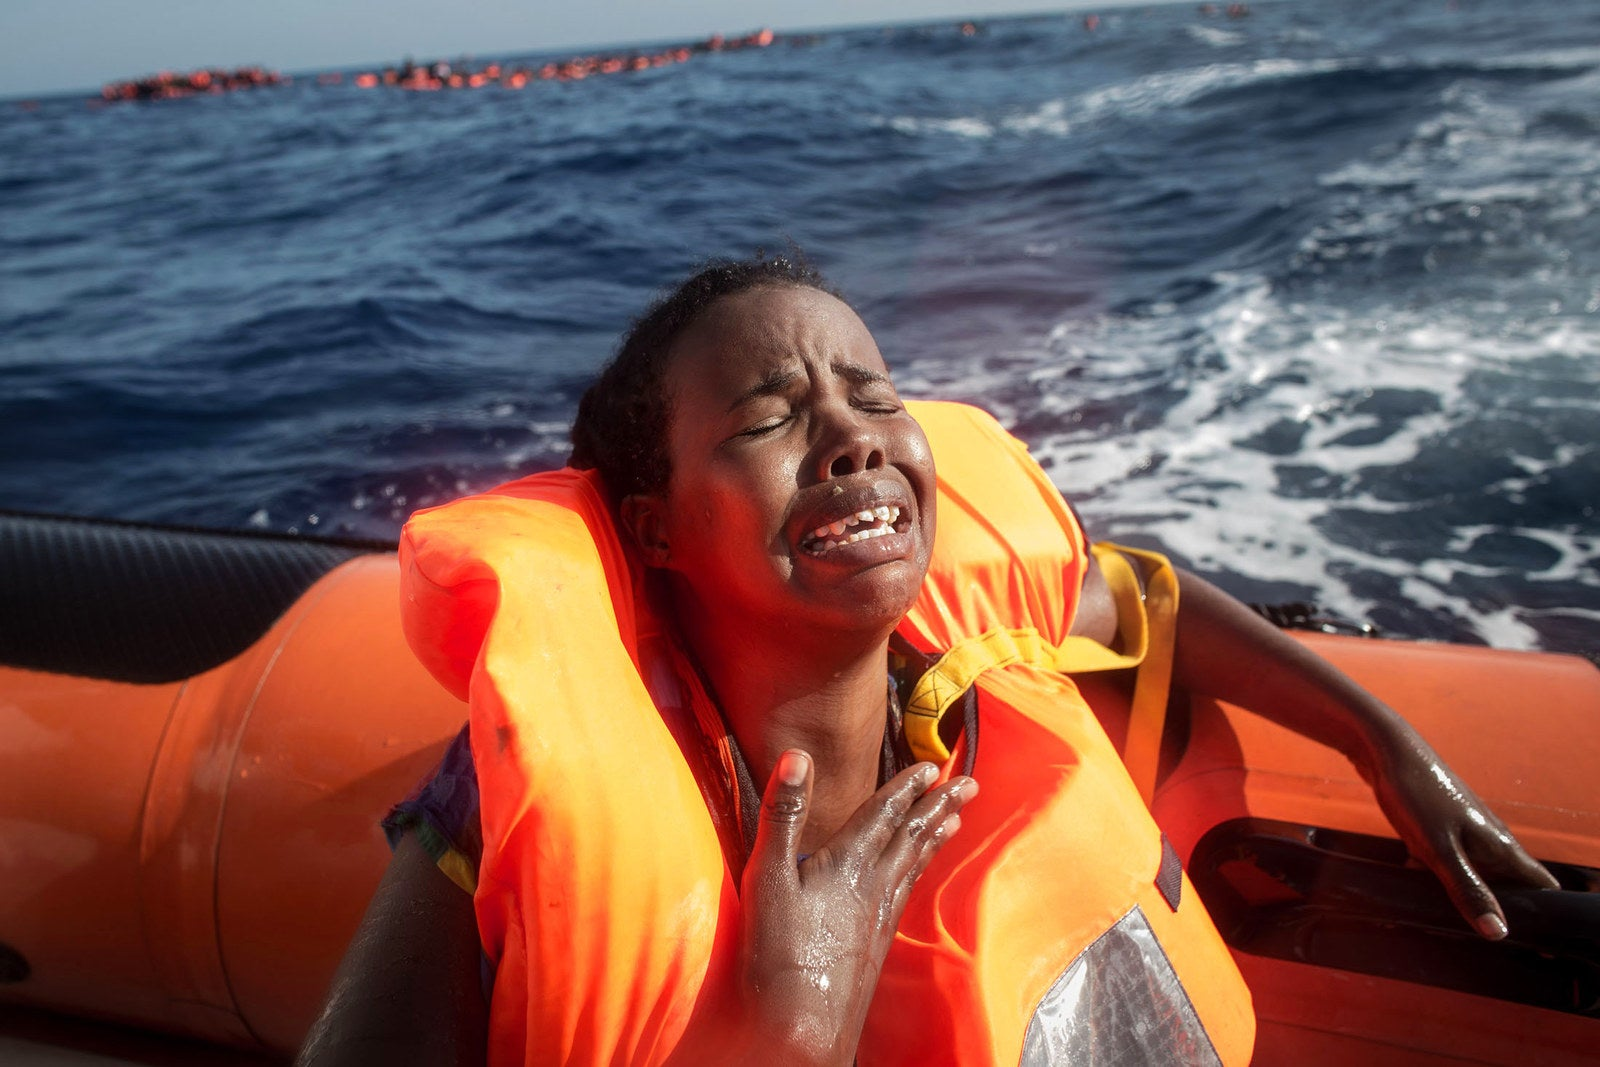 A woman cries after losing her baby in the water as she sits in a rescue boat from the Migrant Offshore Aid Station Phoenix vessel on May 24, off Lampedusa, Italy. The Phoenix vessel rescued 603 people after one of three wooden boats partially capsized leaving more than 30 people dead.